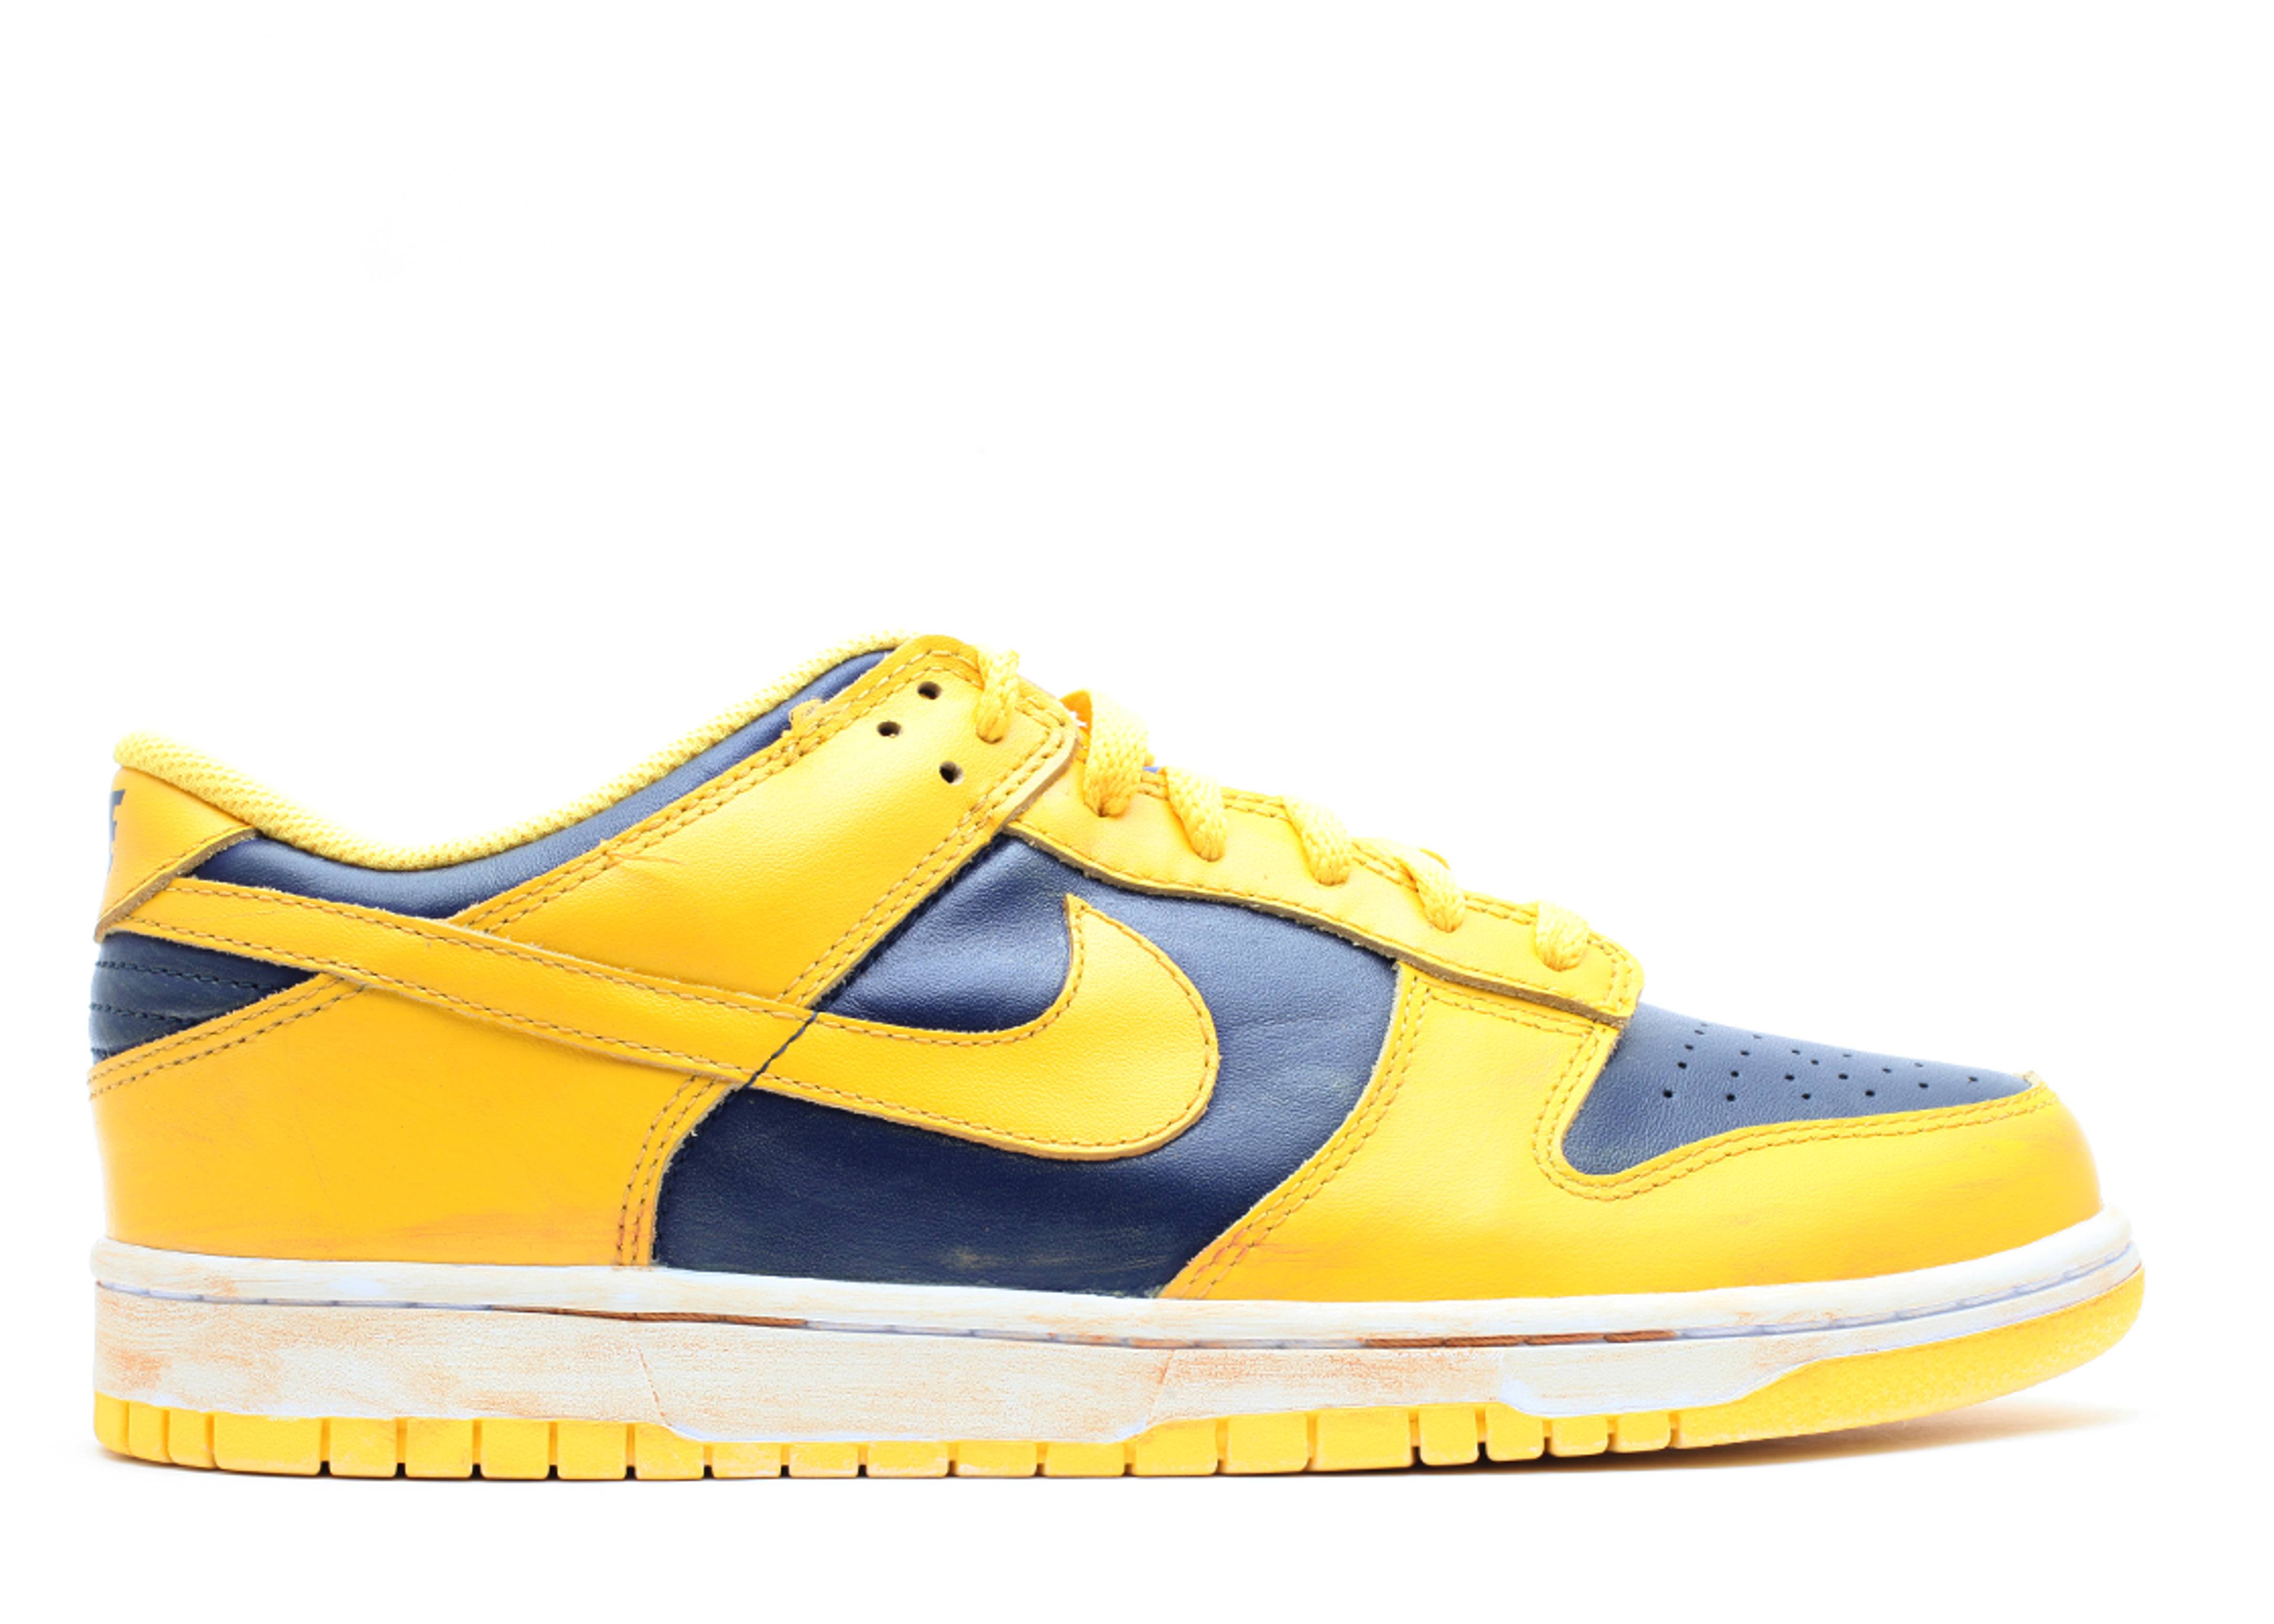 dunk low vntg